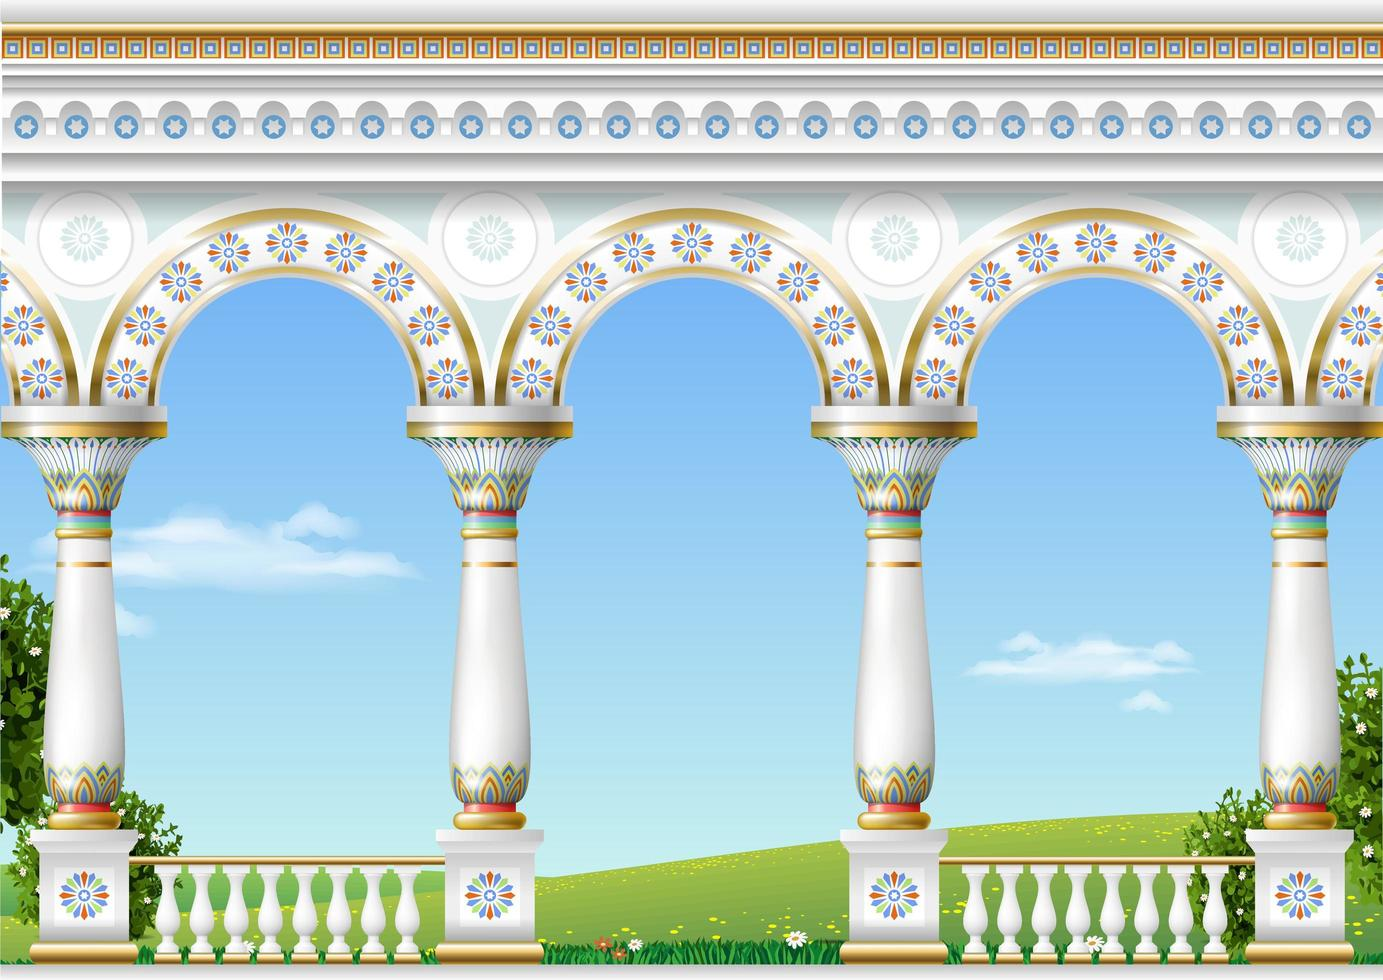 Balcony of a fabulous palace in eastern classical style vector